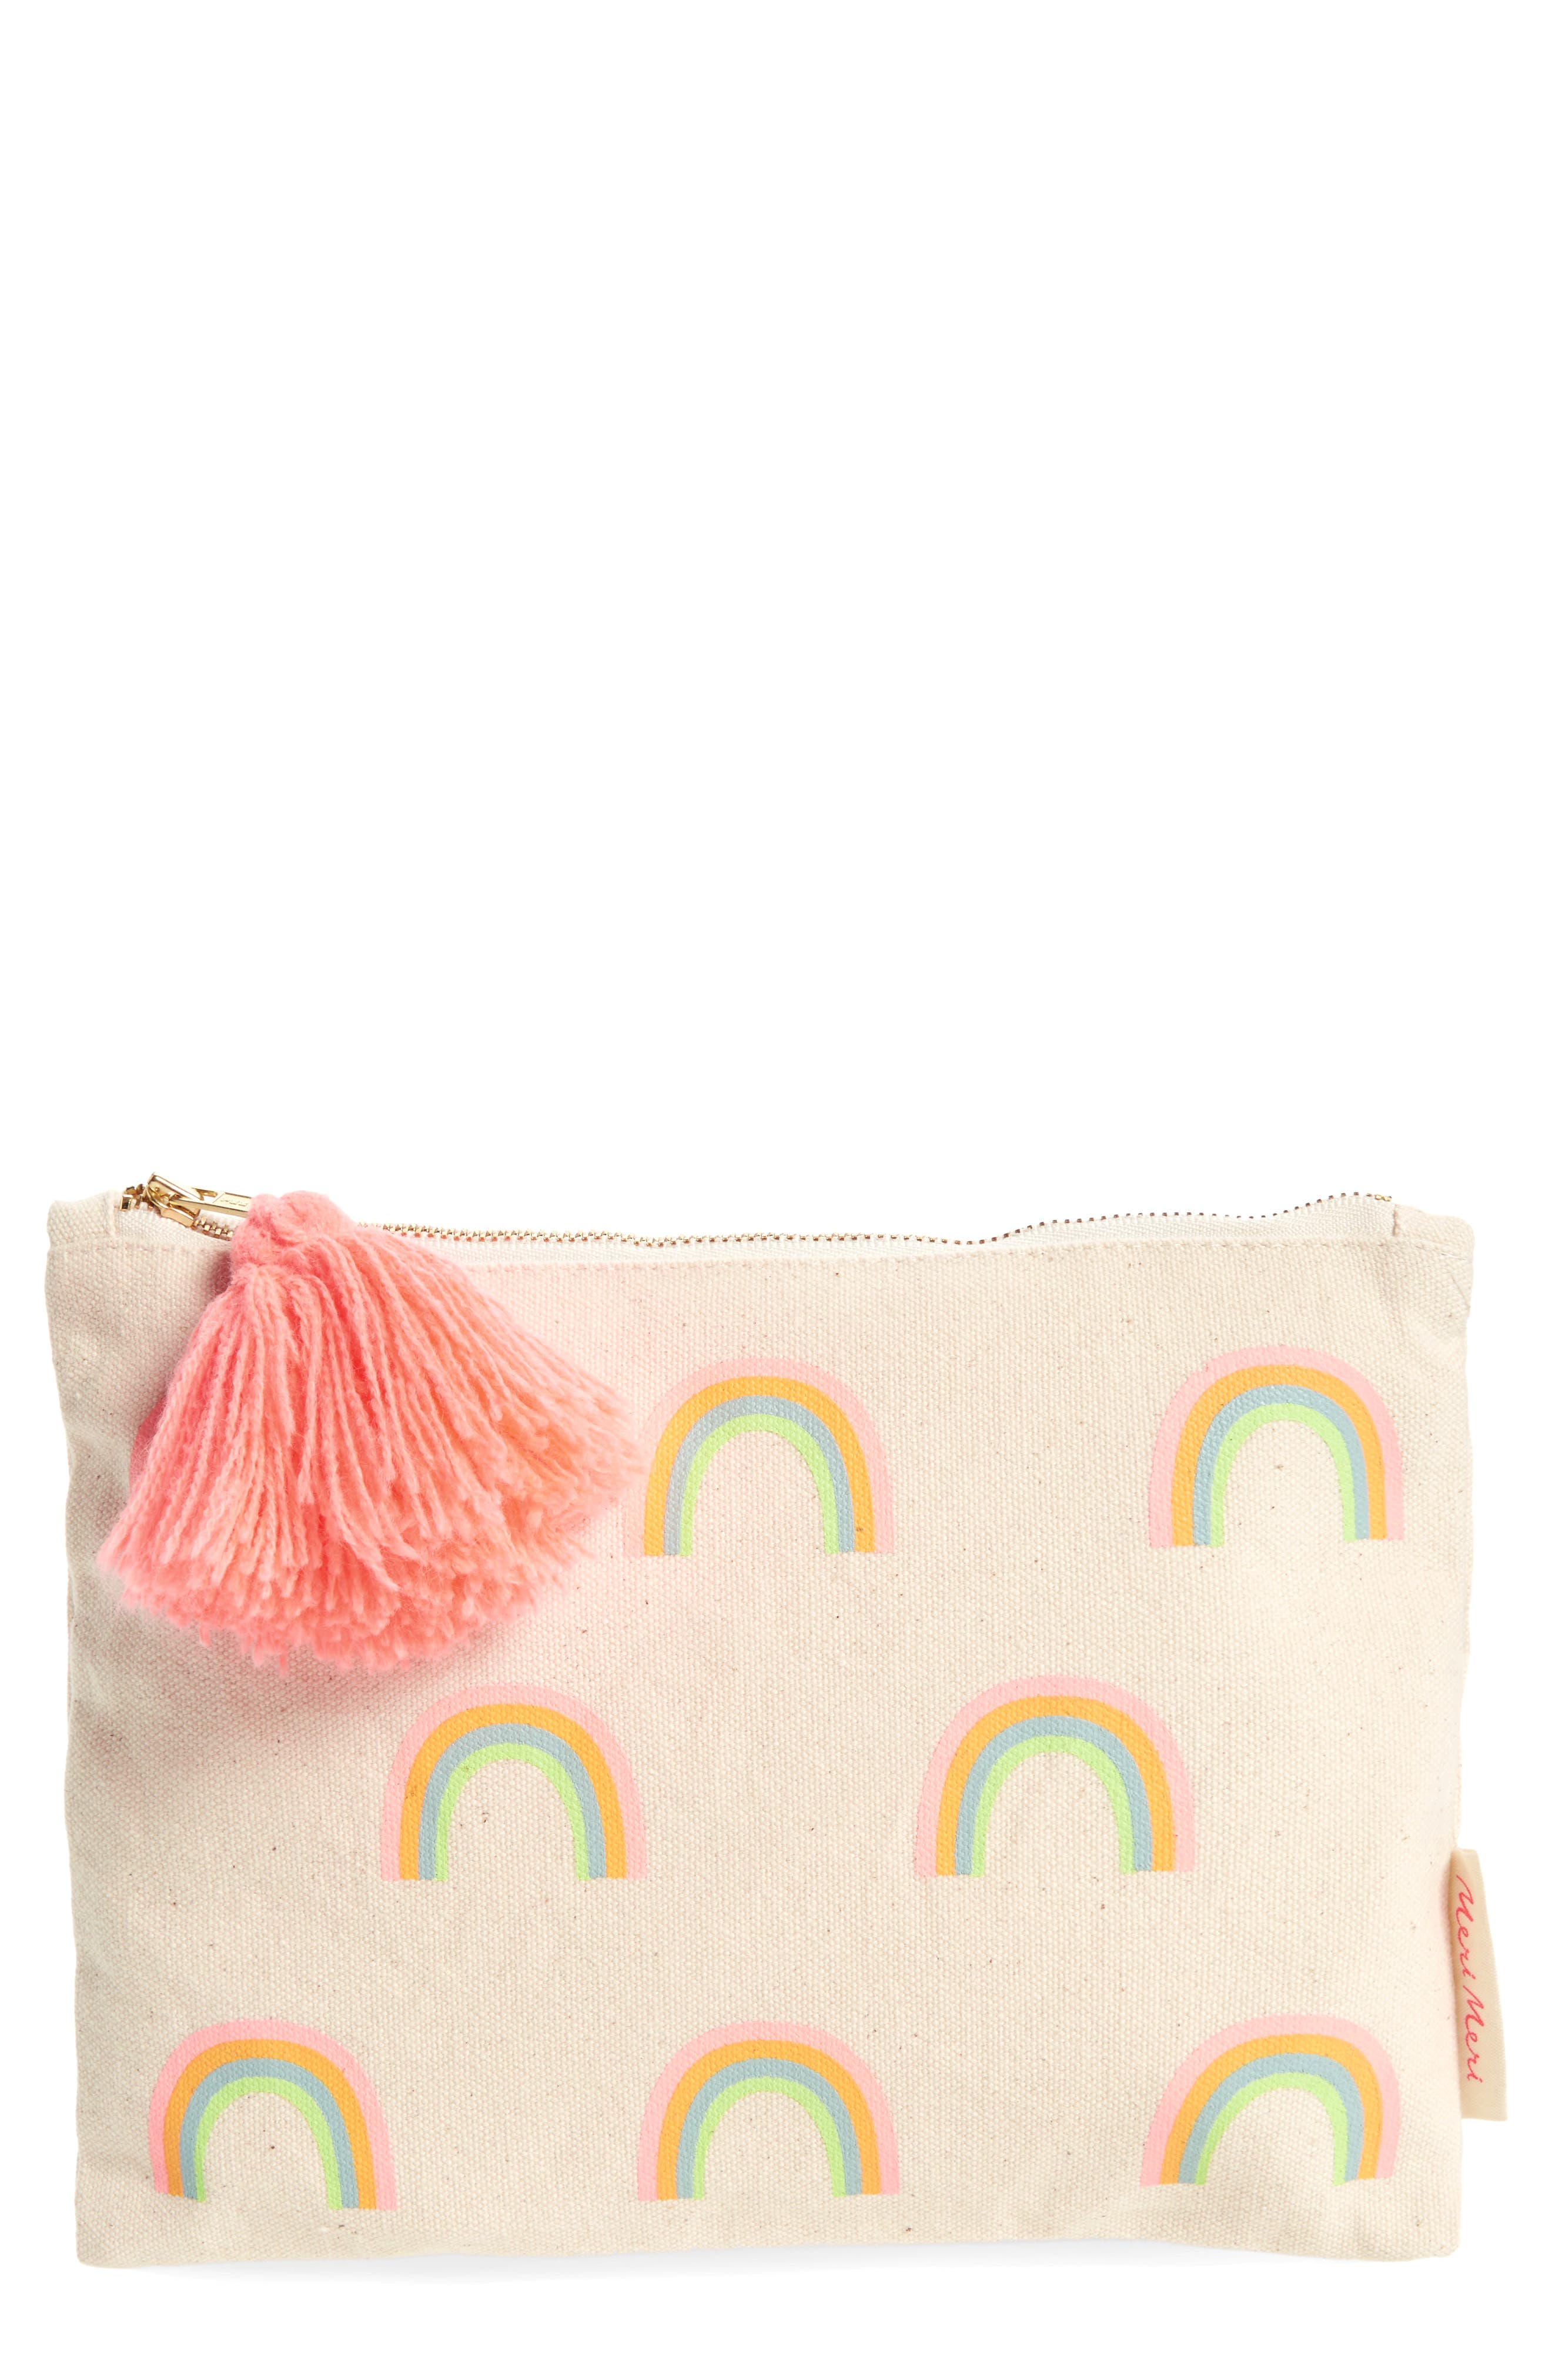 Large Rainbow Zip Pouch,                             Main thumbnail 1, color,                             900